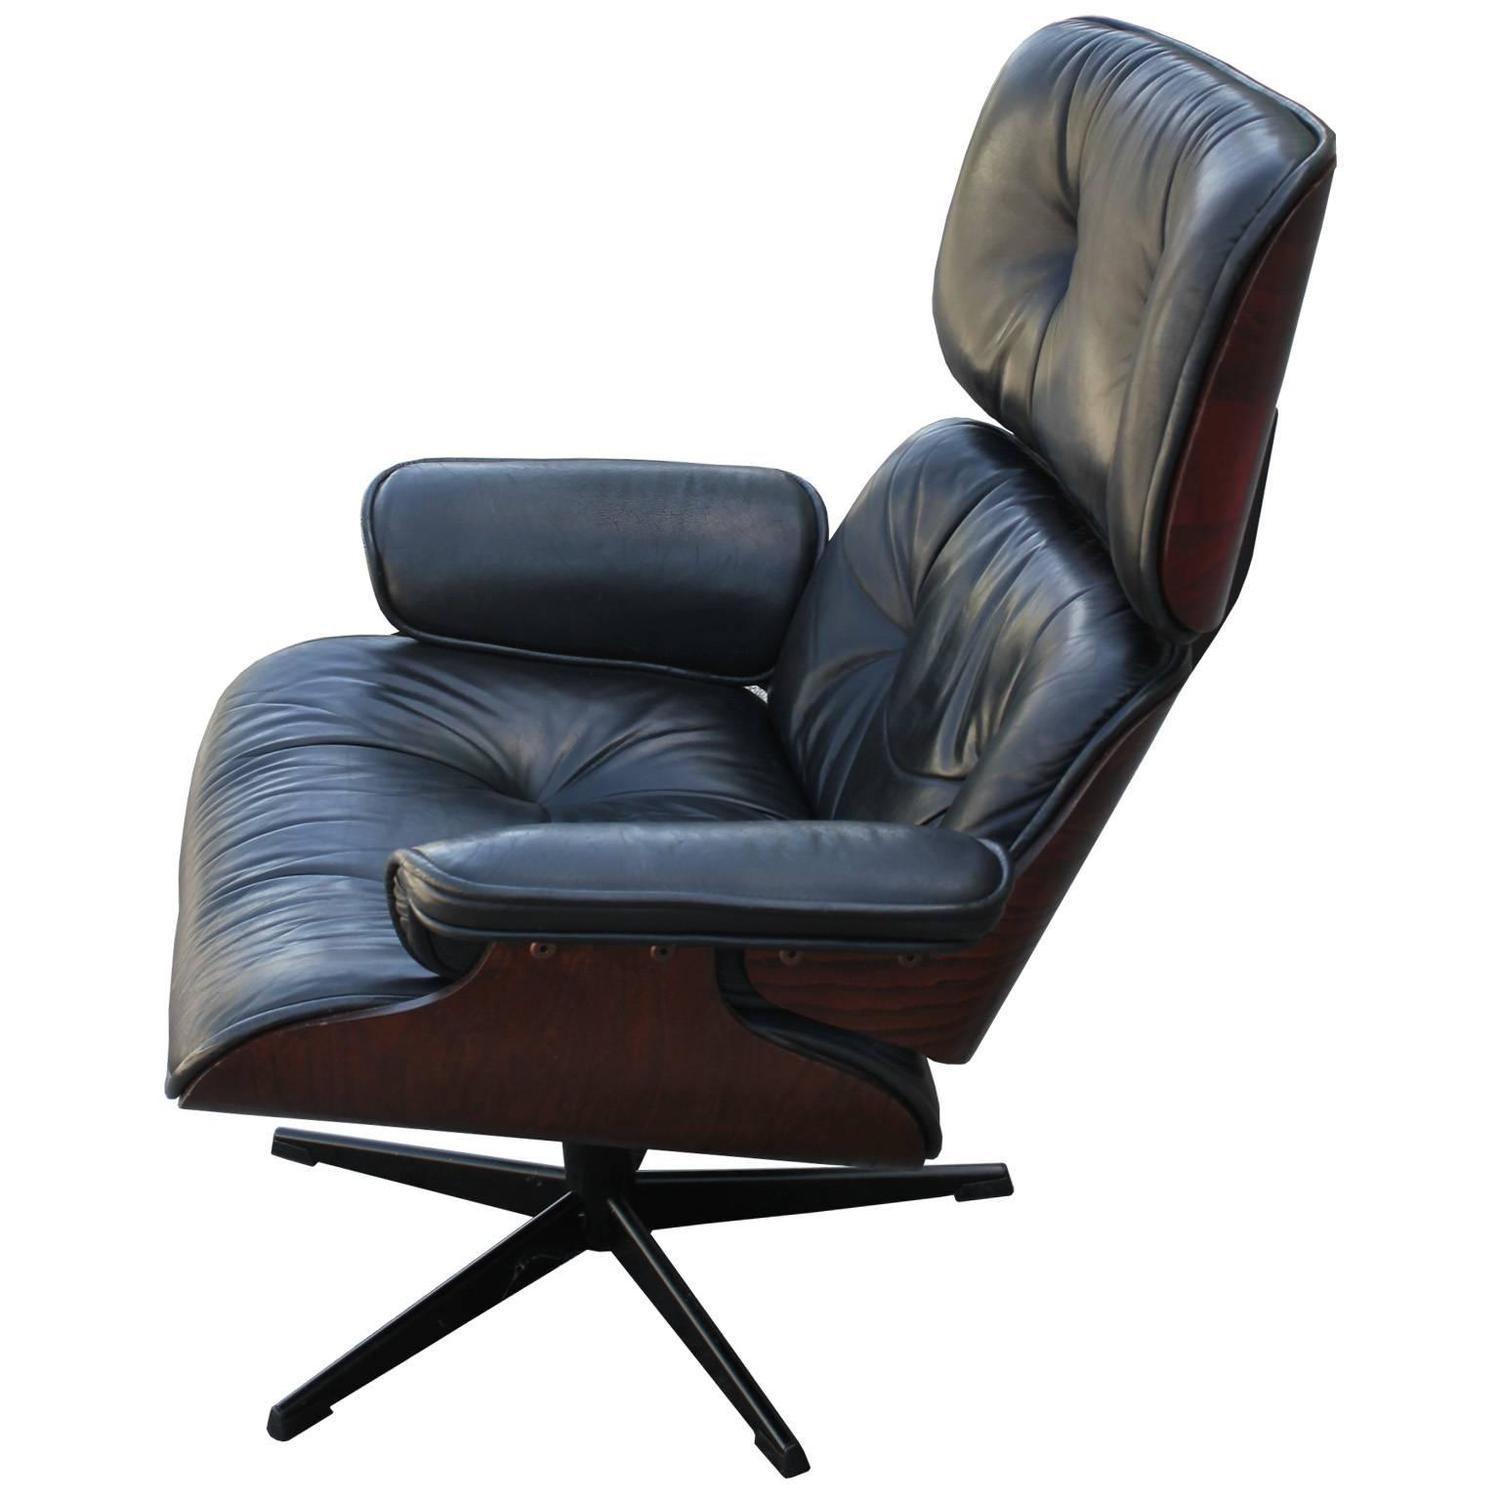 Eames Type Lounge Chair. Eames Style Lounge Chair